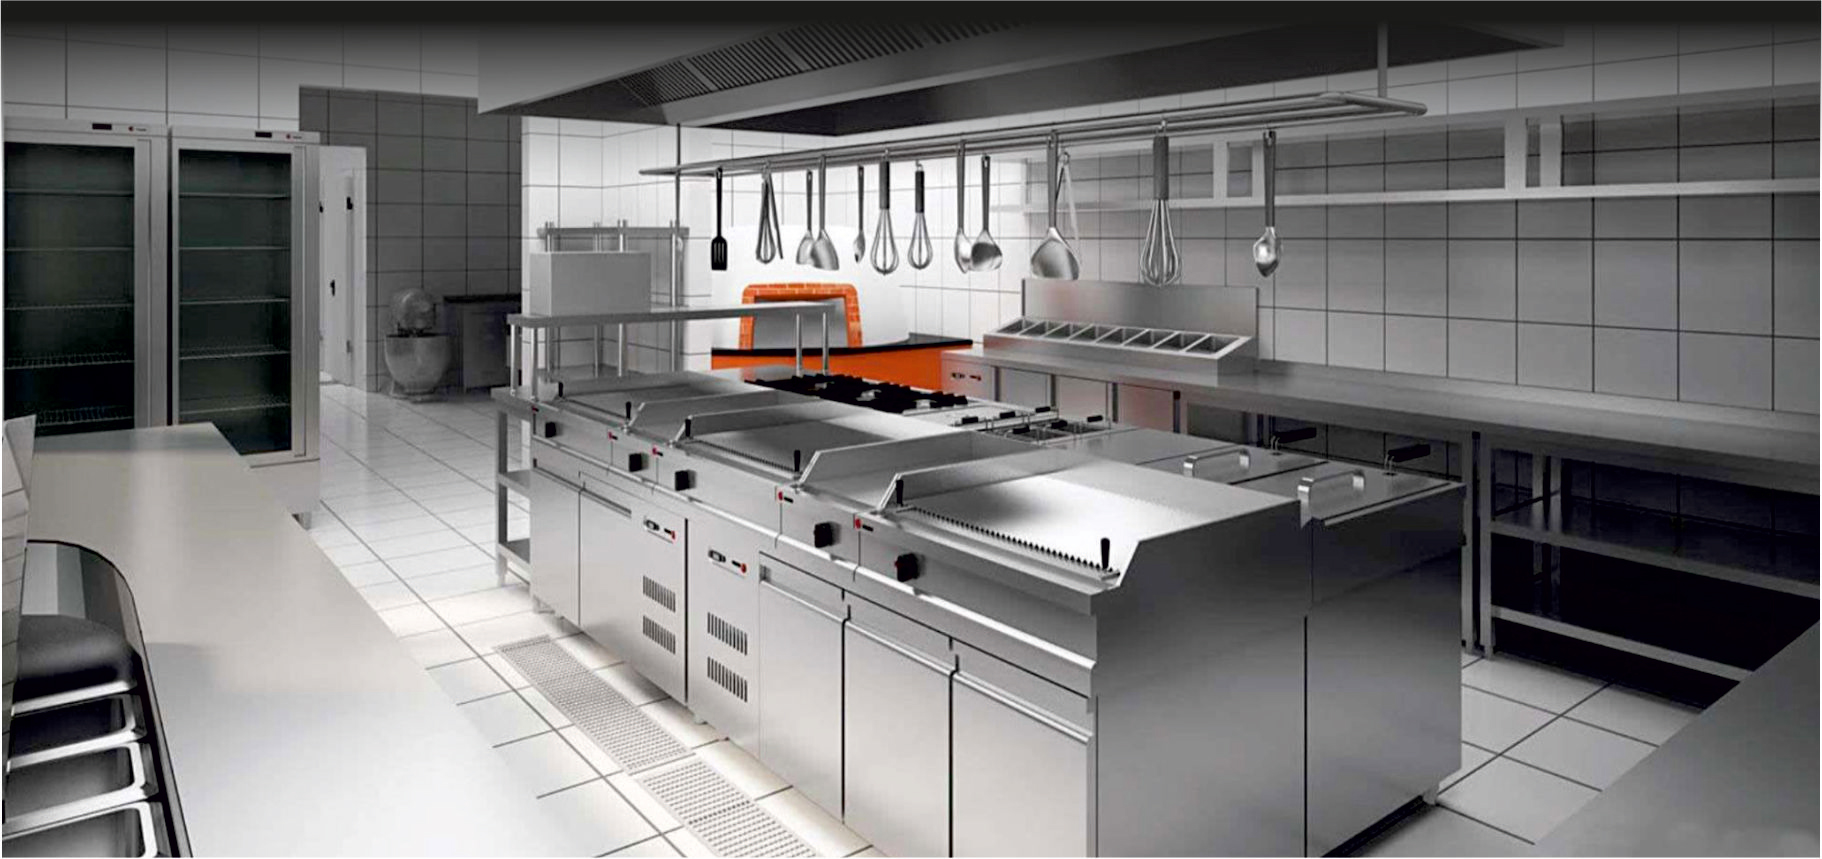 INDUSTRIAL KITCHEN NEEDS FOR HOSPITALS